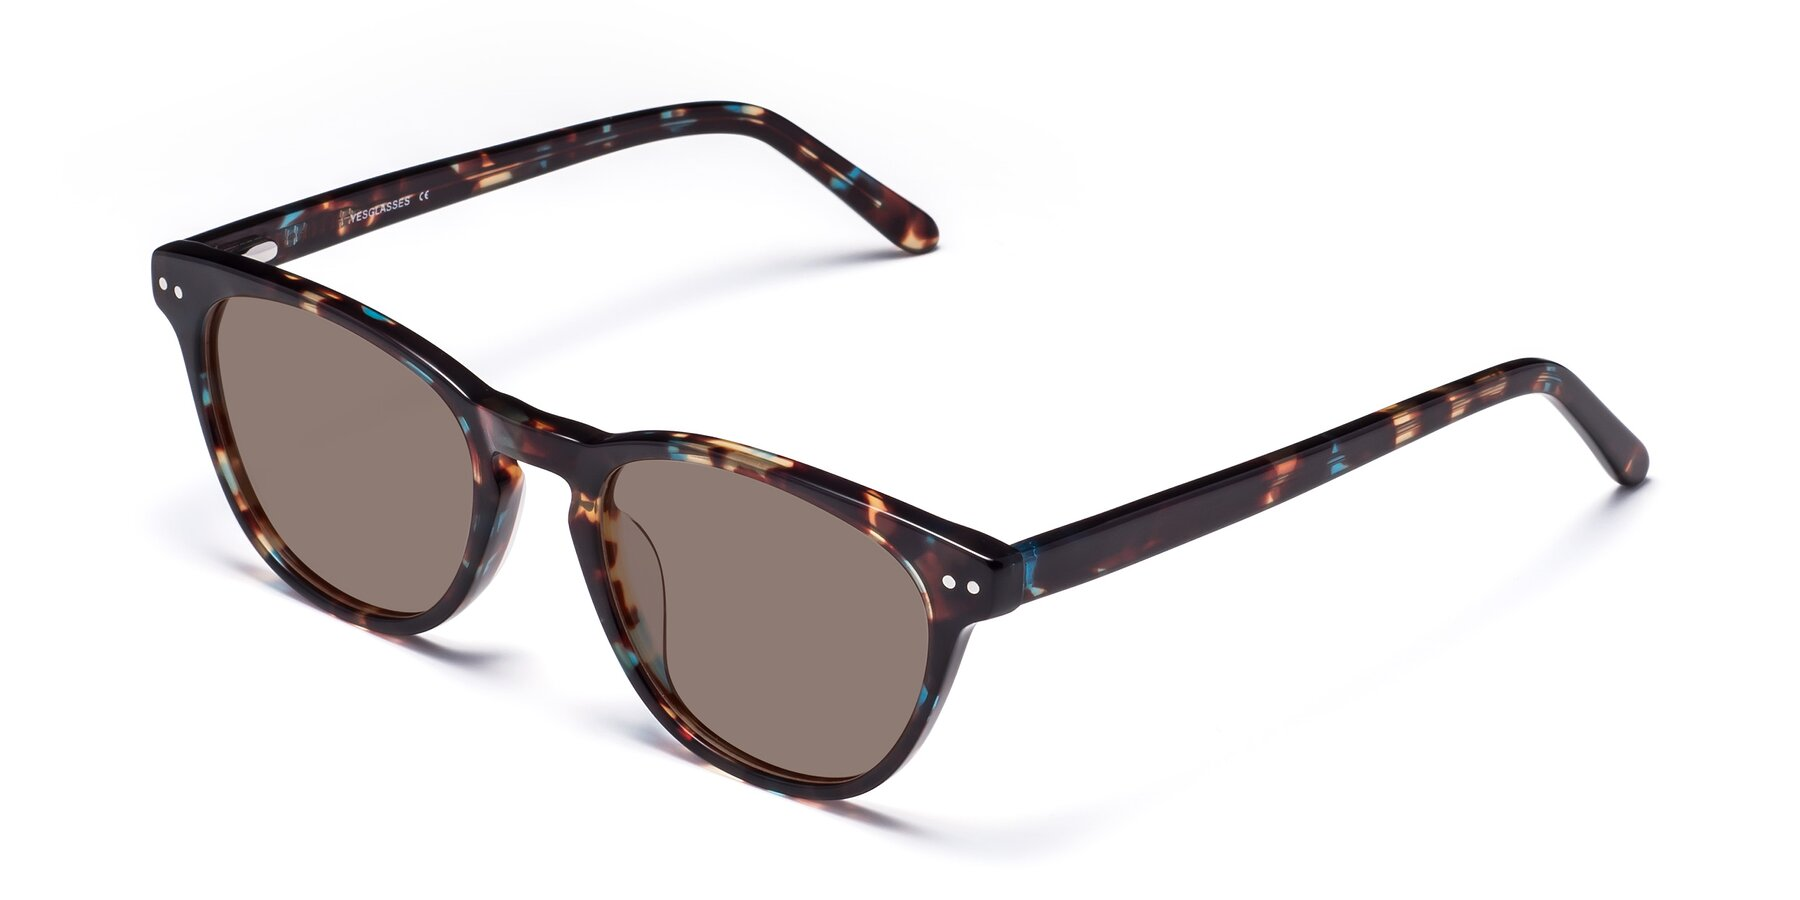 Angle of Blaze in Tortoise-Blue with Medium Brown Tinted Lenses